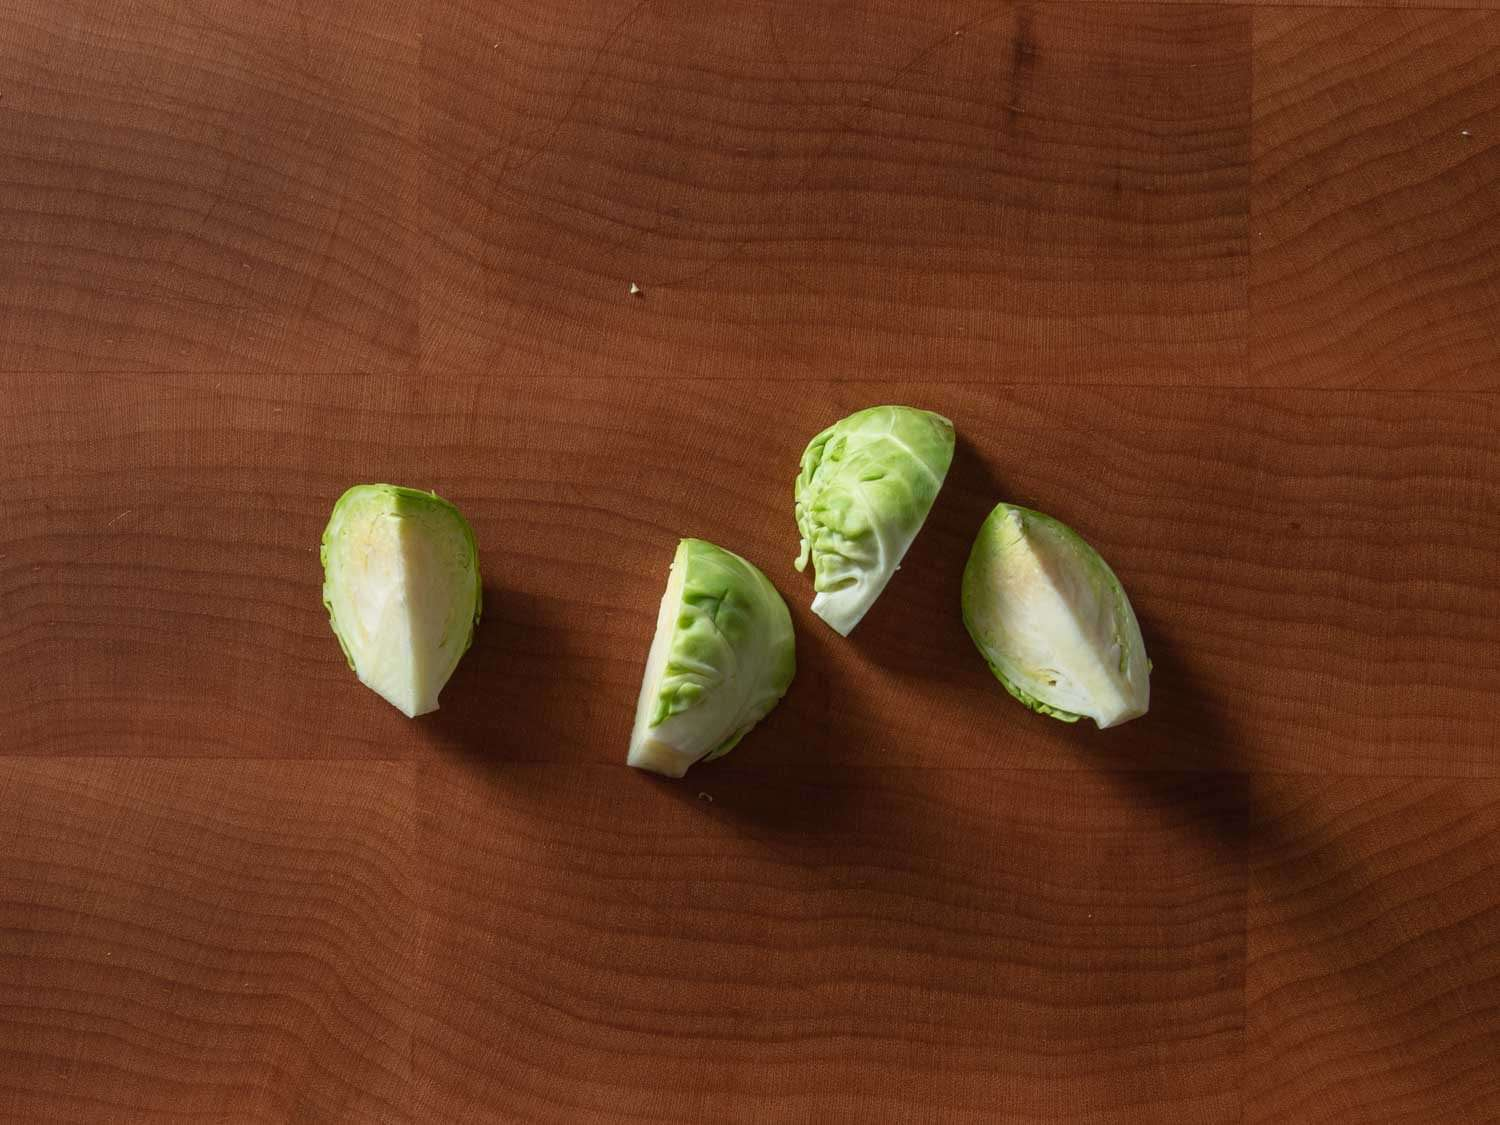 A Brussels sprout that has been cut into quarters lengthwise through the core.